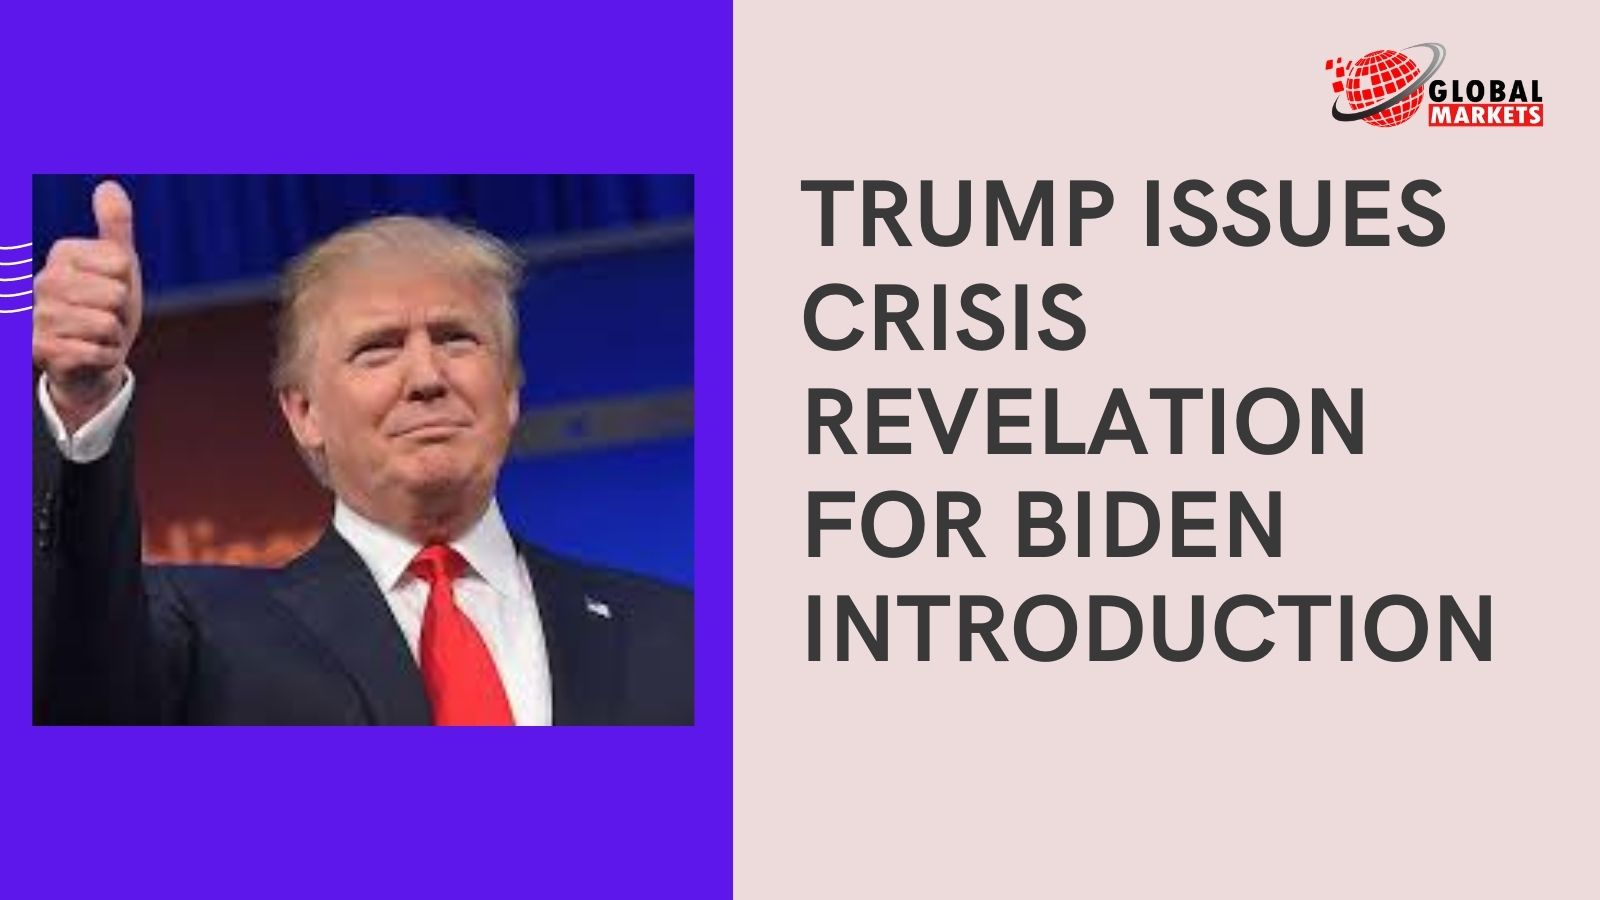 Trump issues crisis revelation for Biden introduction